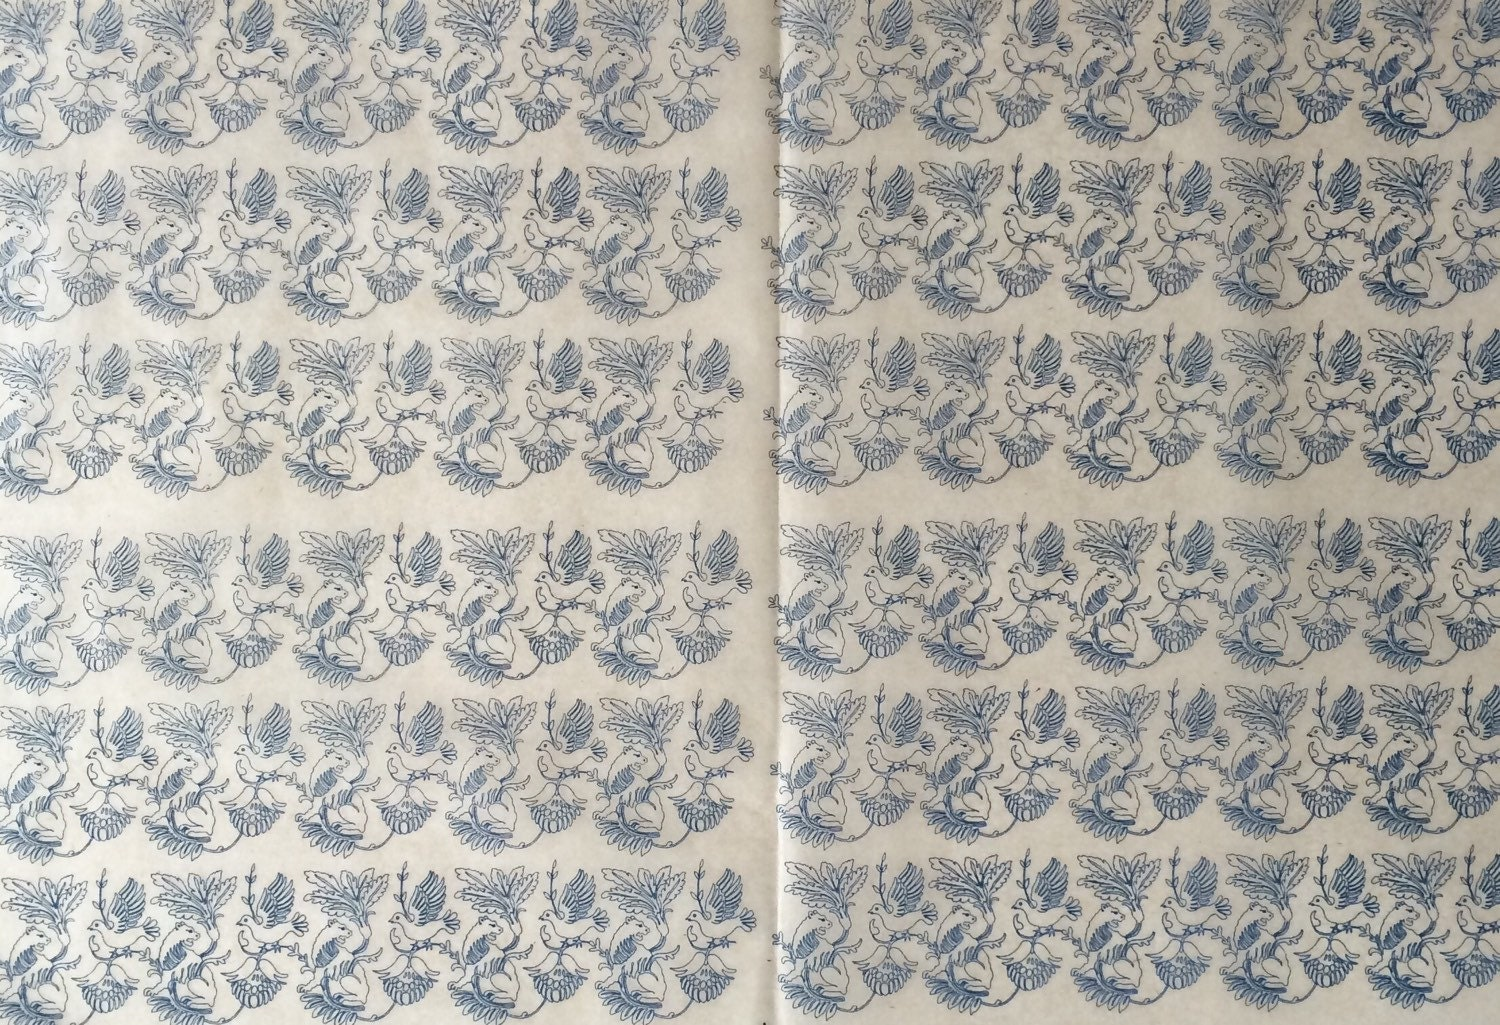 10 Sheets Of Underglaze Decal Ceramic Paper Handmade From